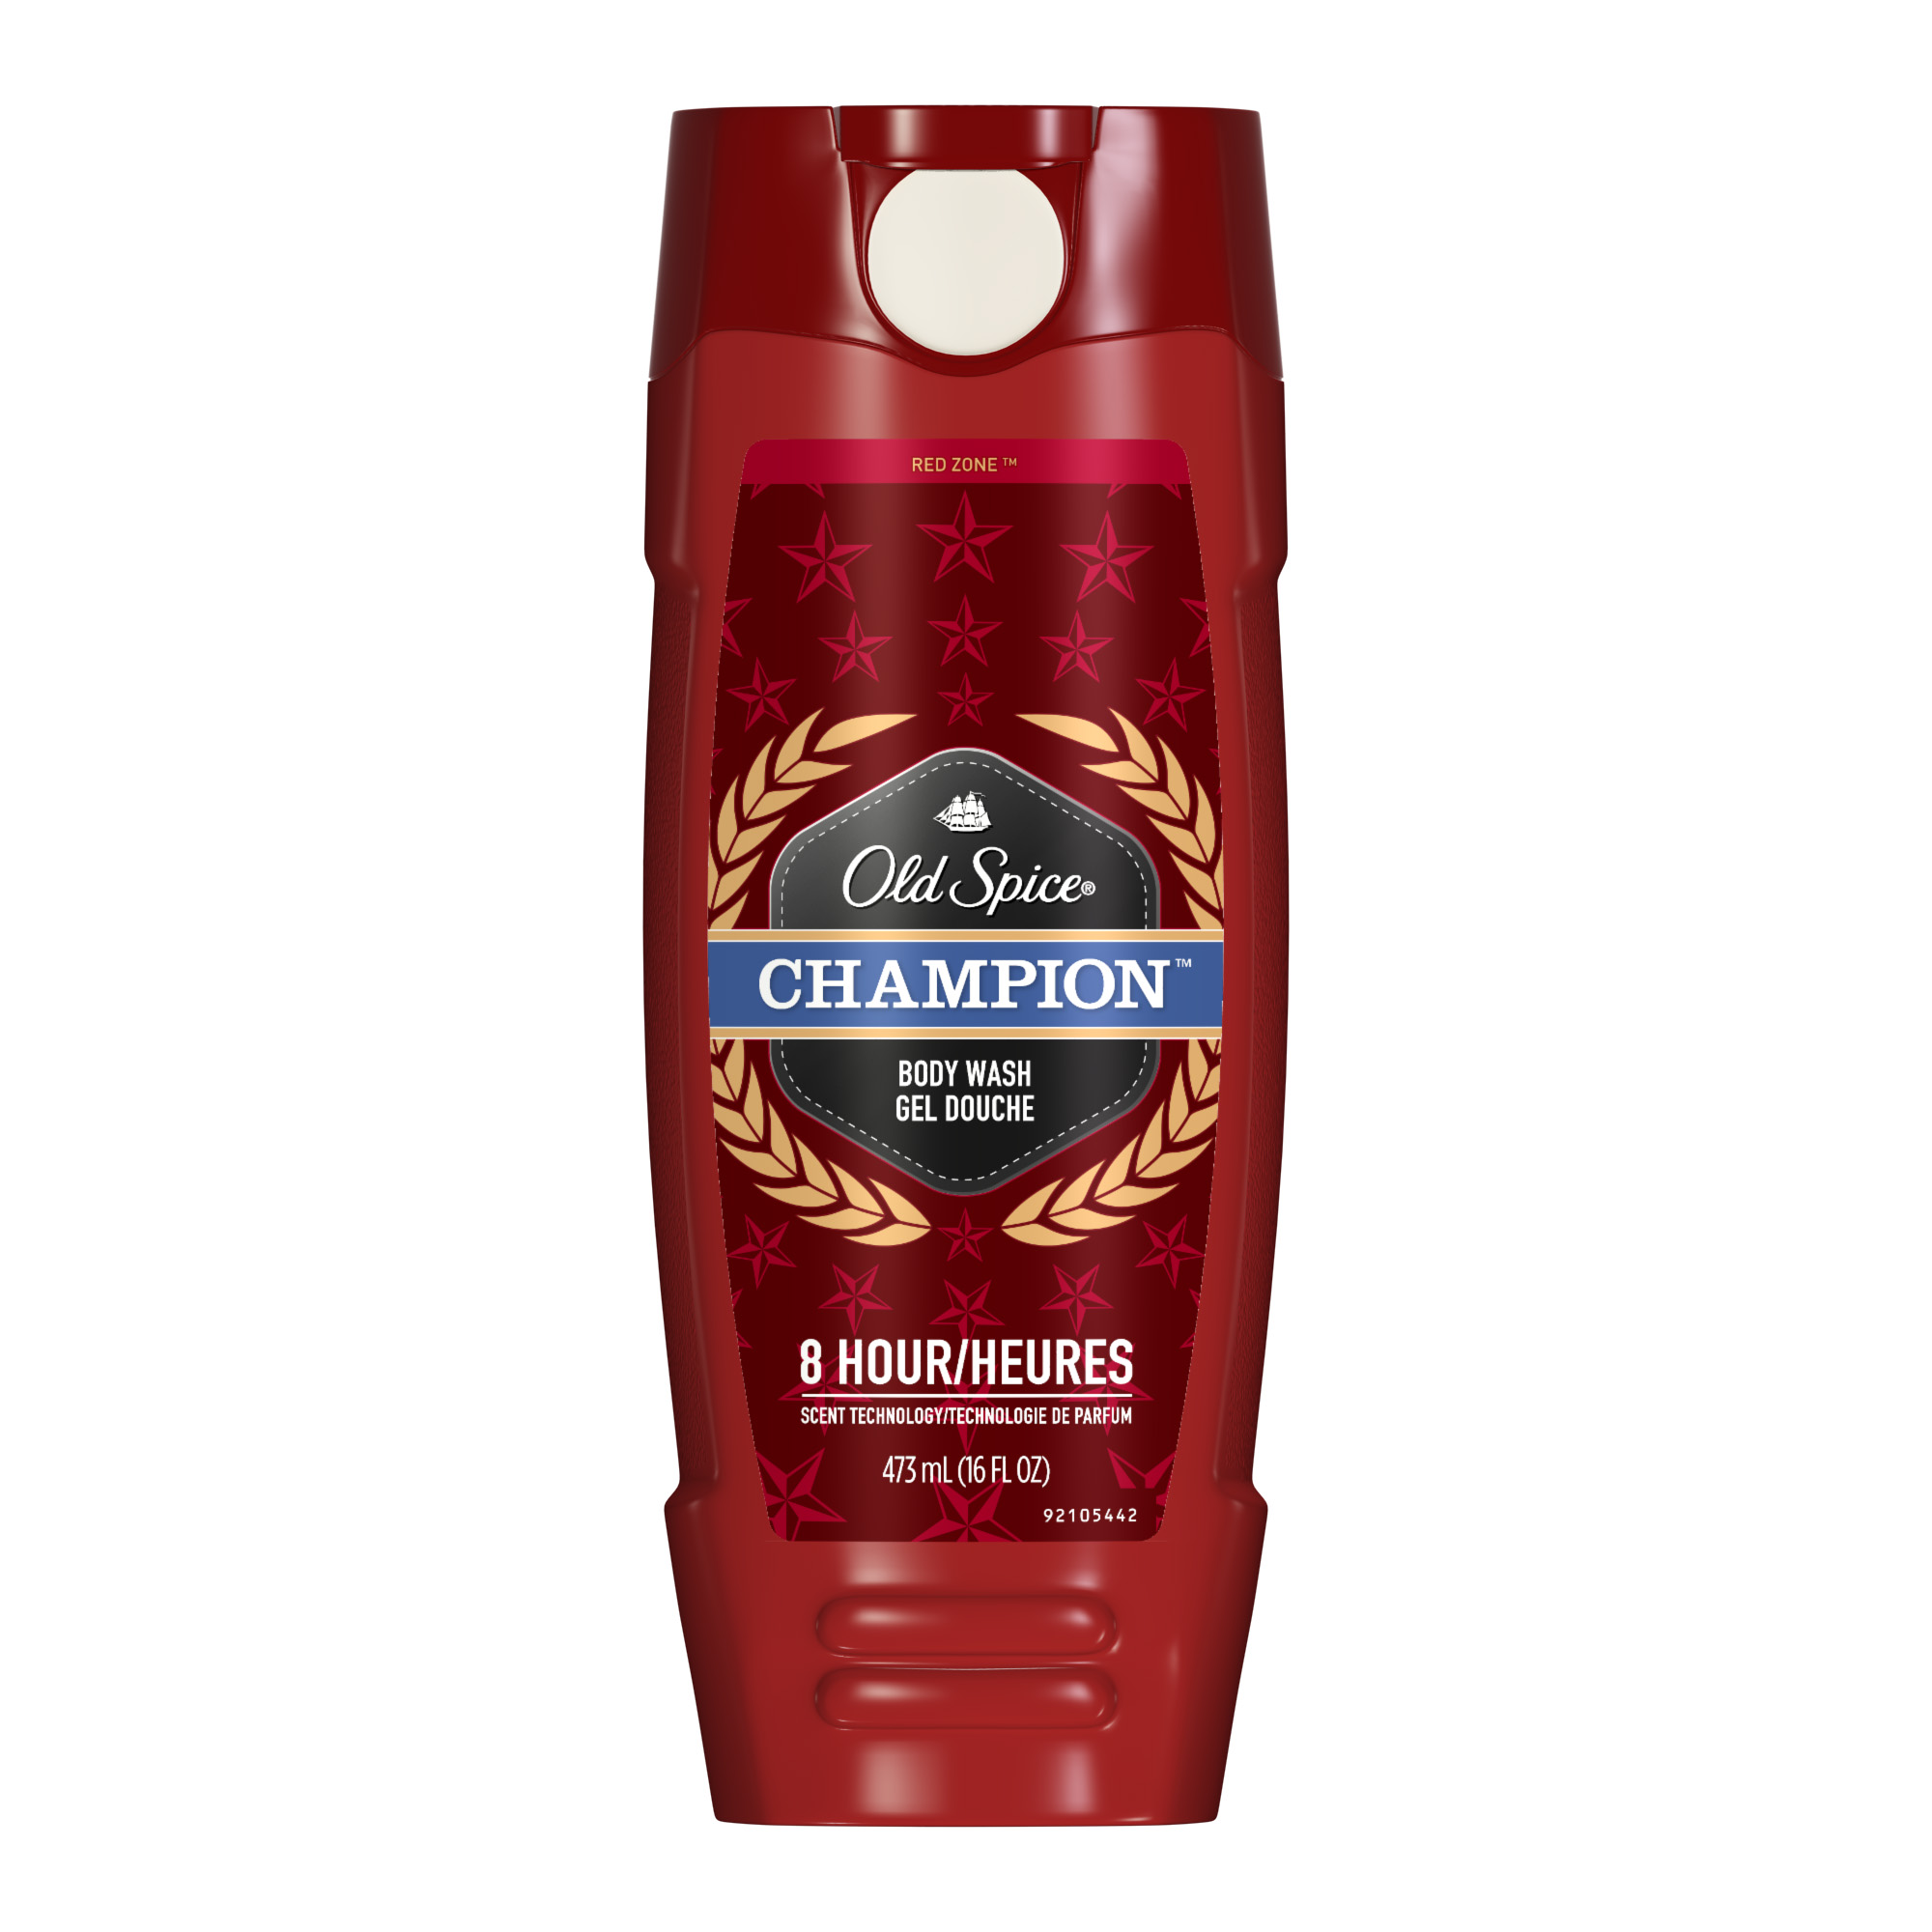 Old Spice Red Zone Champion Scent Body Wash for Men, 16 oz